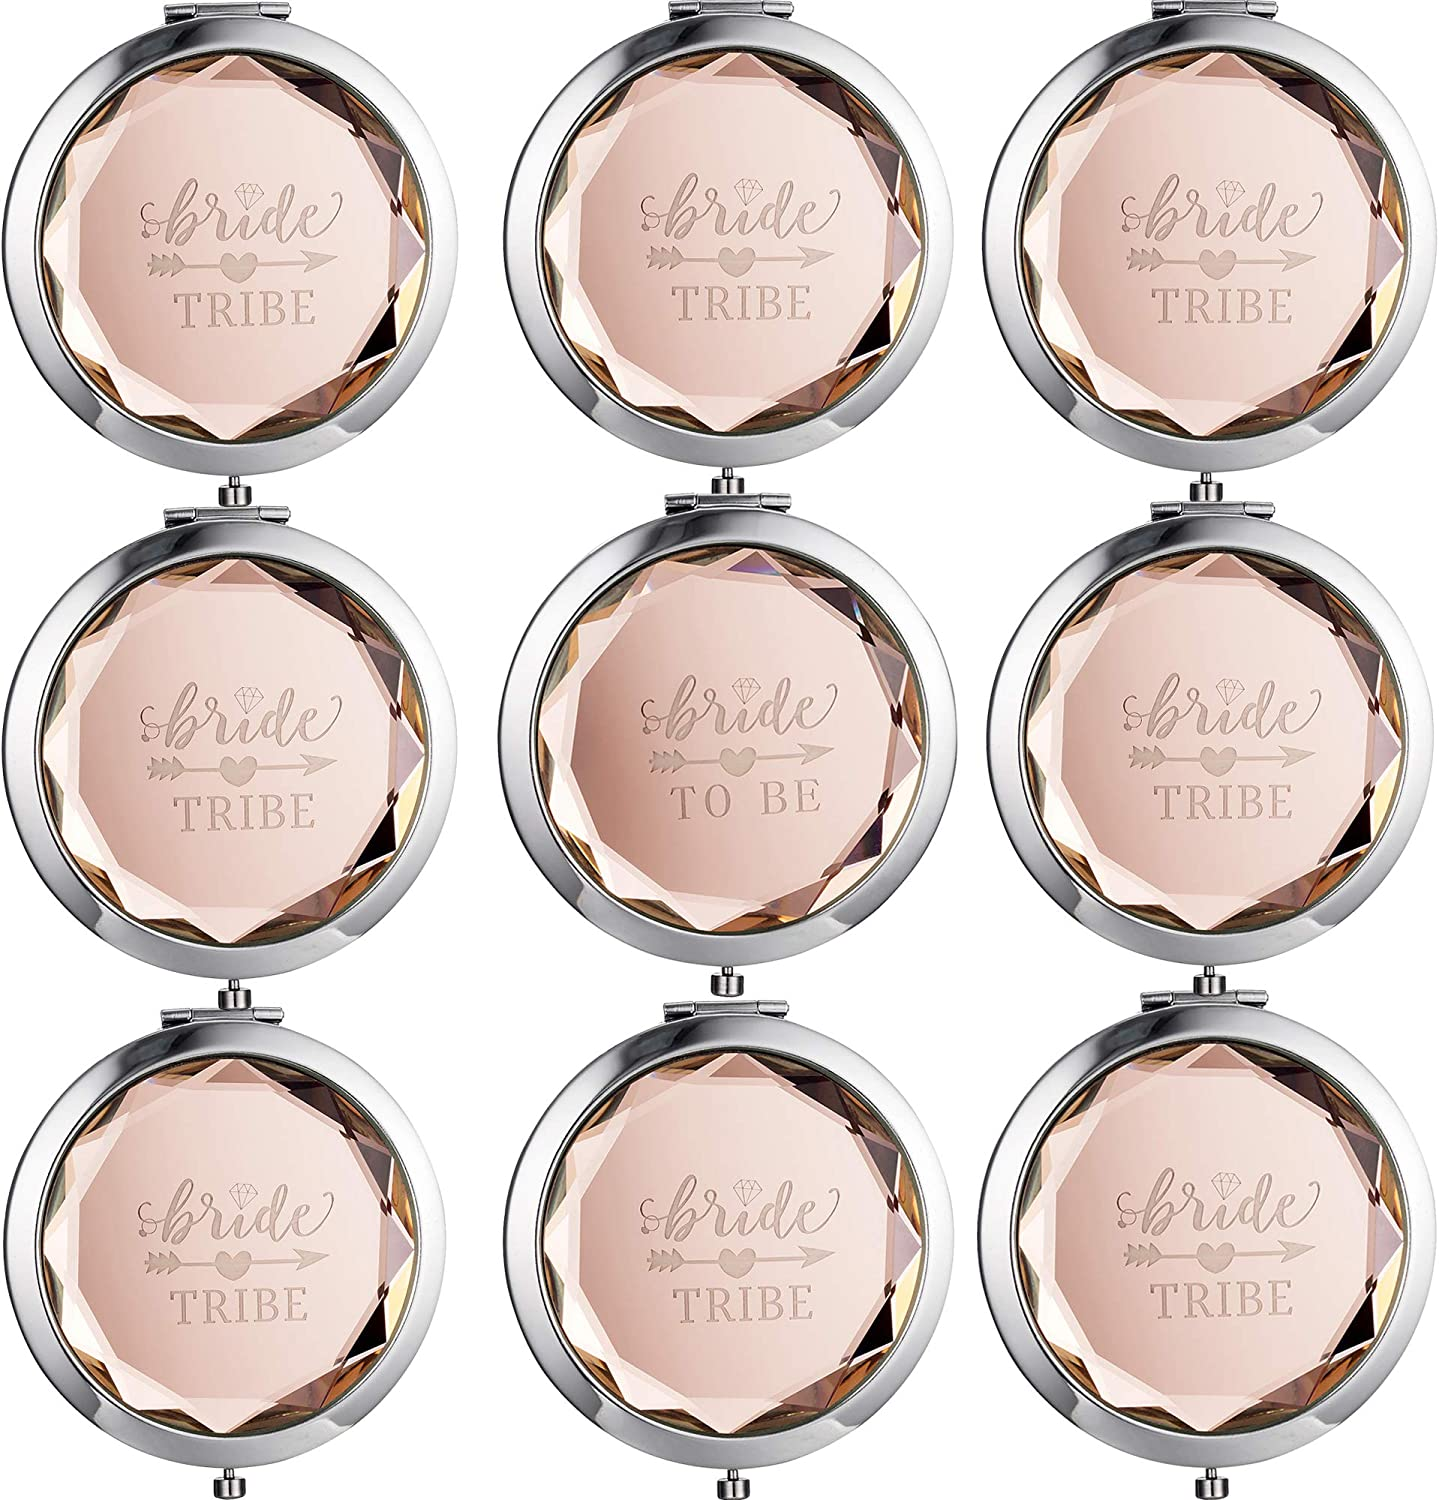 9 Sets Makeup Pocket Compact Mirror, 1 Bride To Be Makeup Mirror 8 Bride Tribe Mirrors Wedding Bridesmaid Gifts-Double Magnifying Mirror For Bridal Party,Champagne Diamond Cutting Style Pocket Mirror